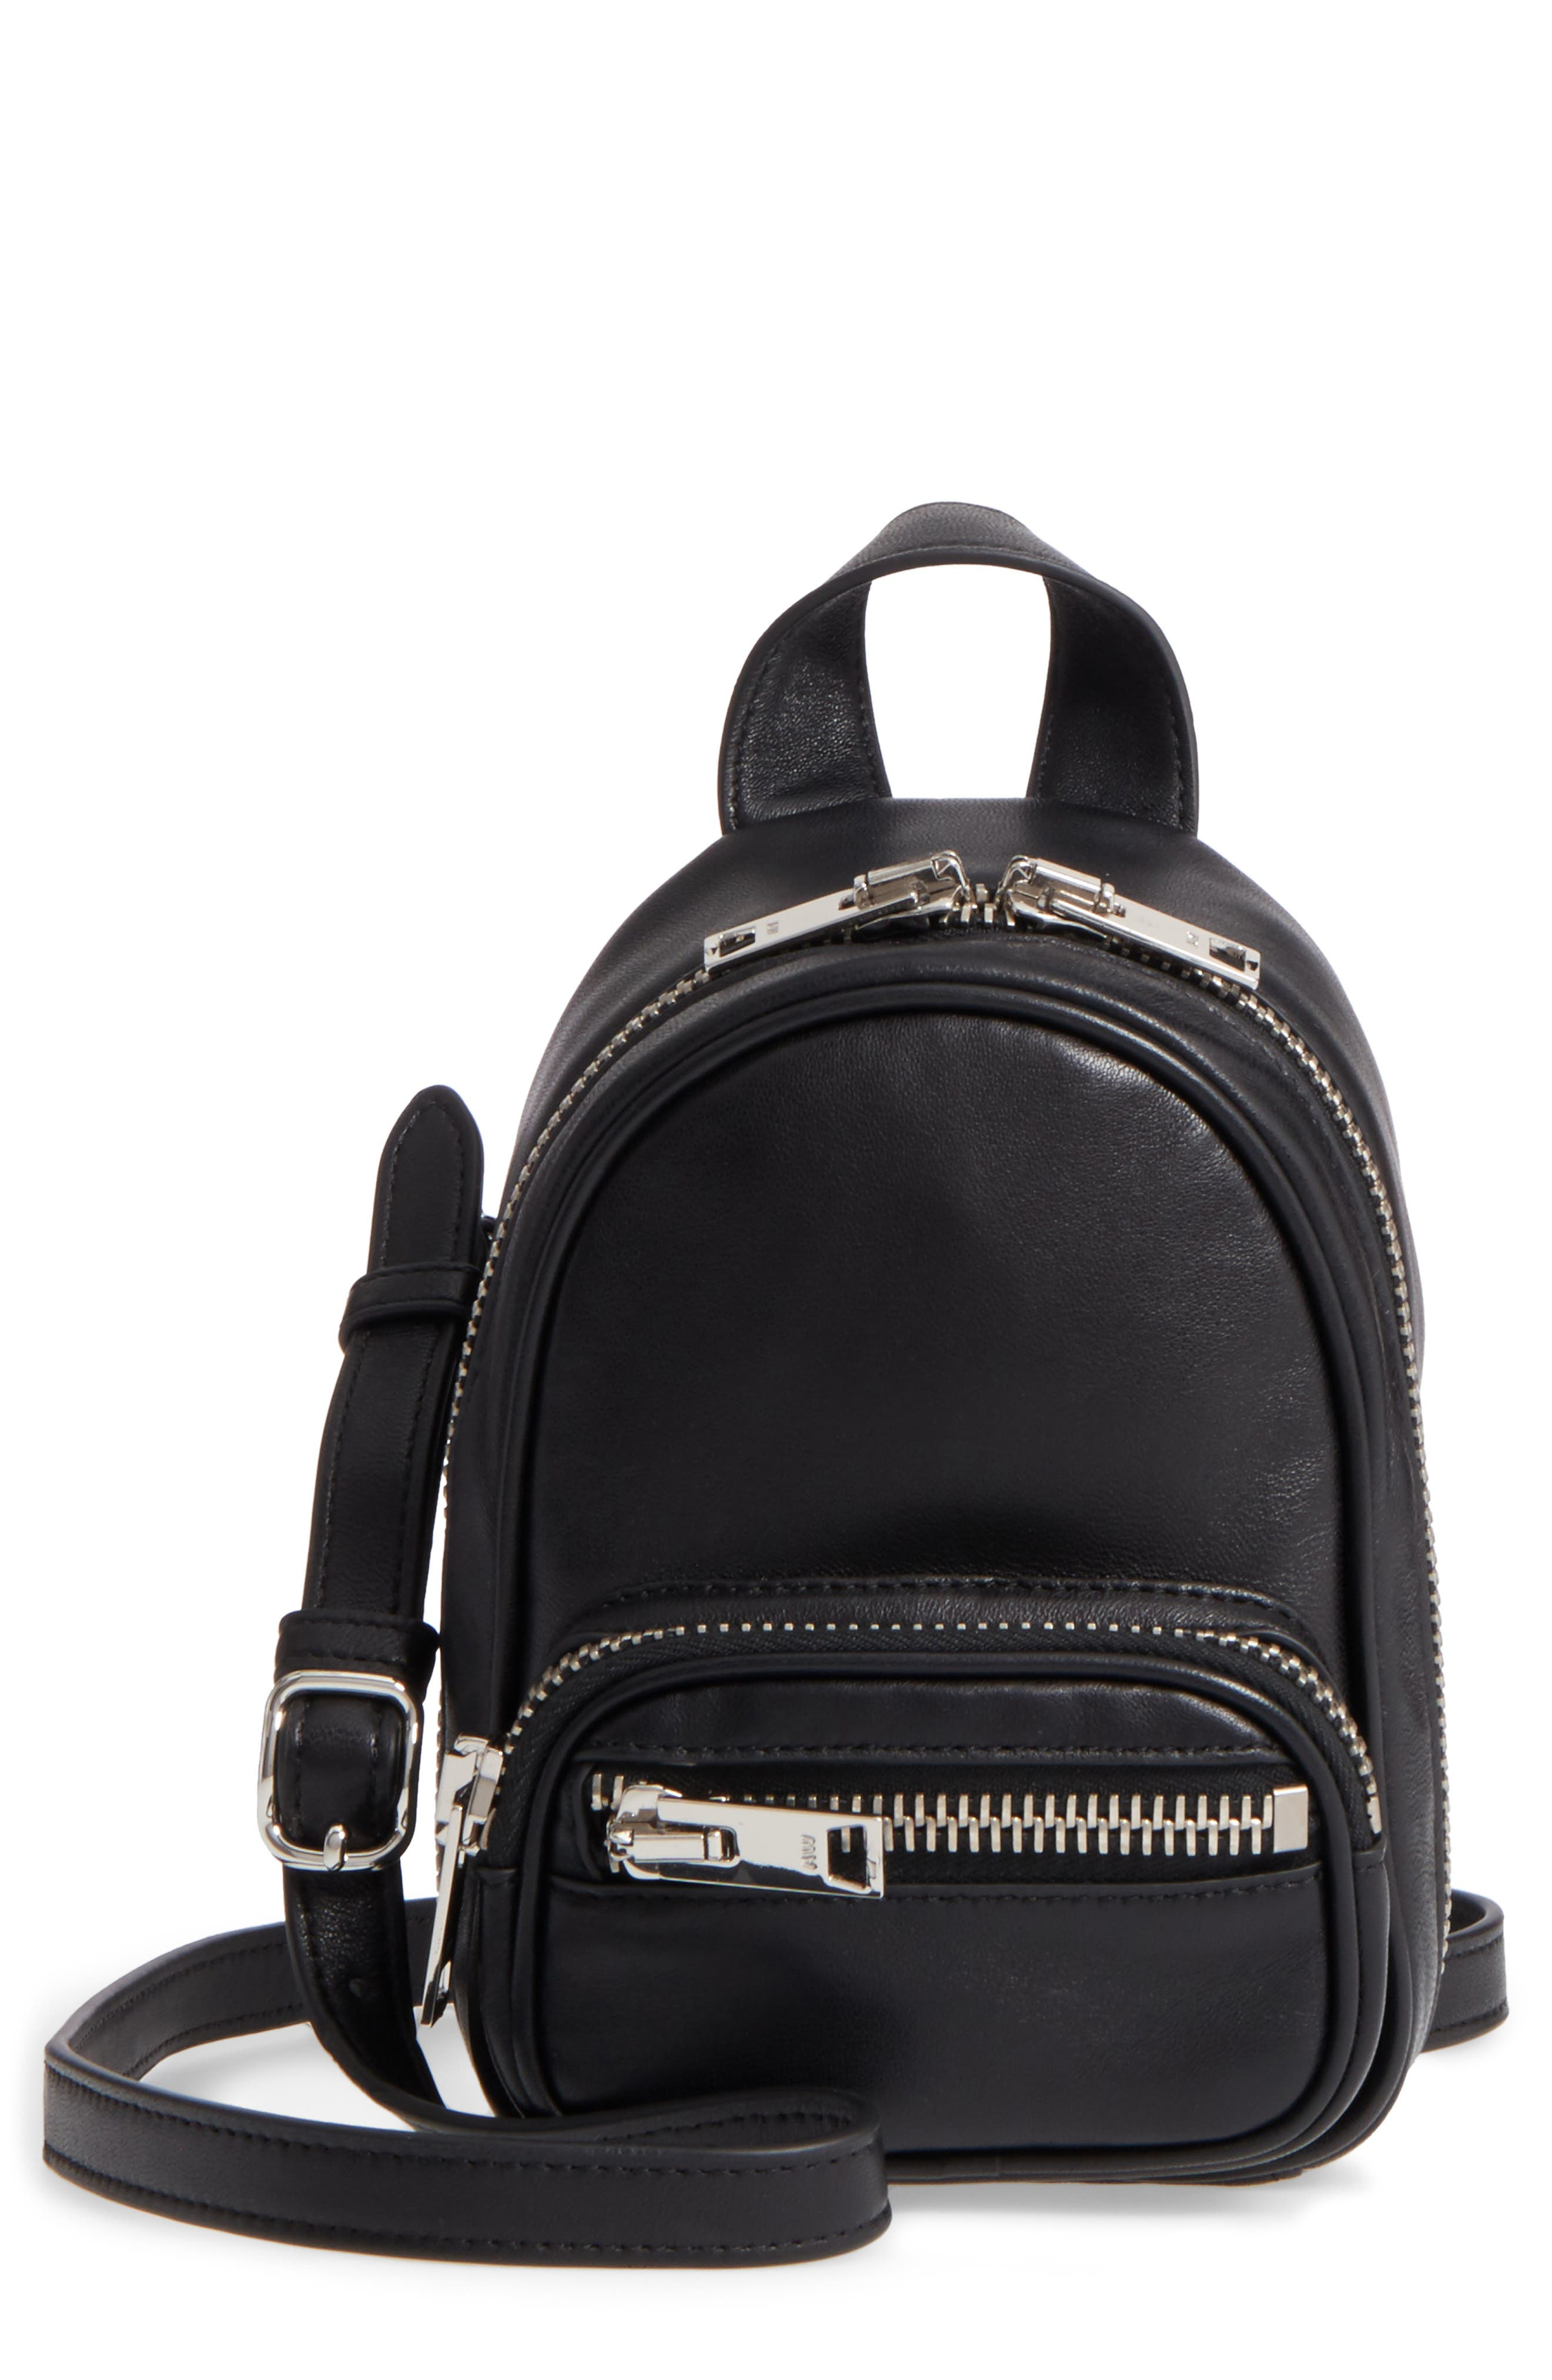 Main Image - Alexander Wang Mini Attica Leather Backpack Shaped Crossbody Bag